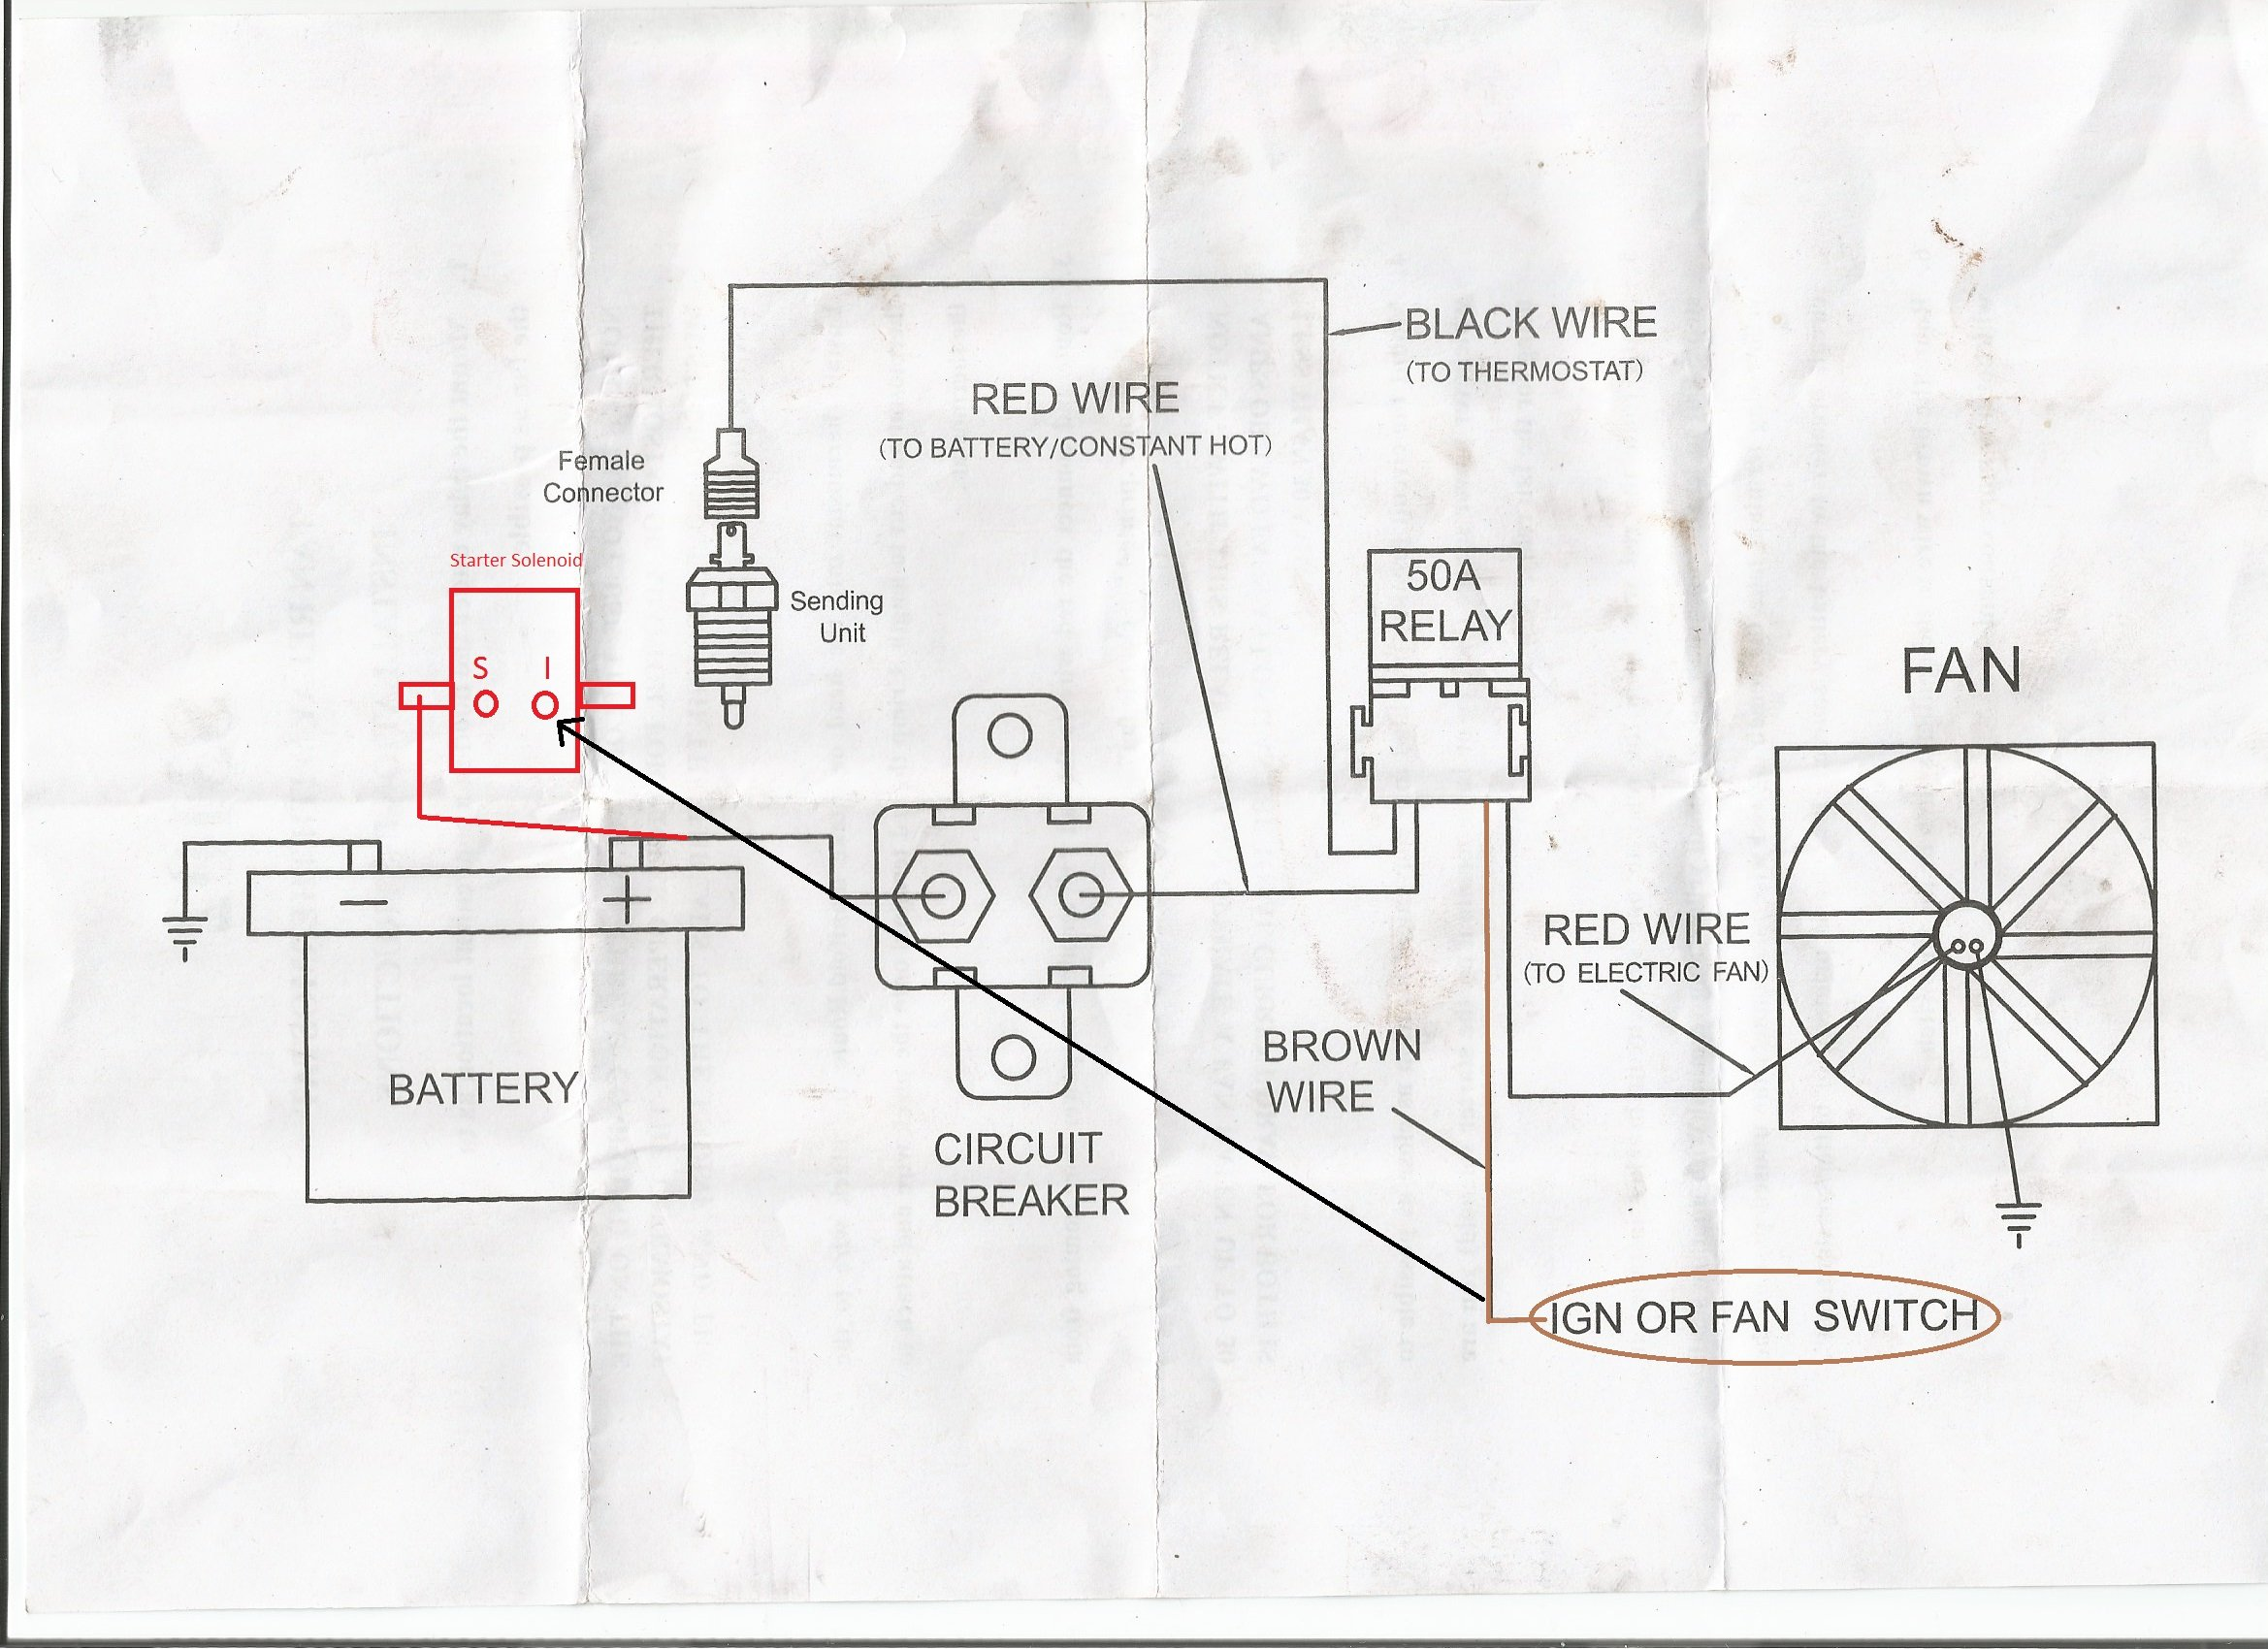 Painless Electric Fan Wiring Kit Car Diagrams Explained How To Wire Automotive I Installed My Relay But Ford Mustang Forum Rh Allfordmustangs Com Diagram Adjustable